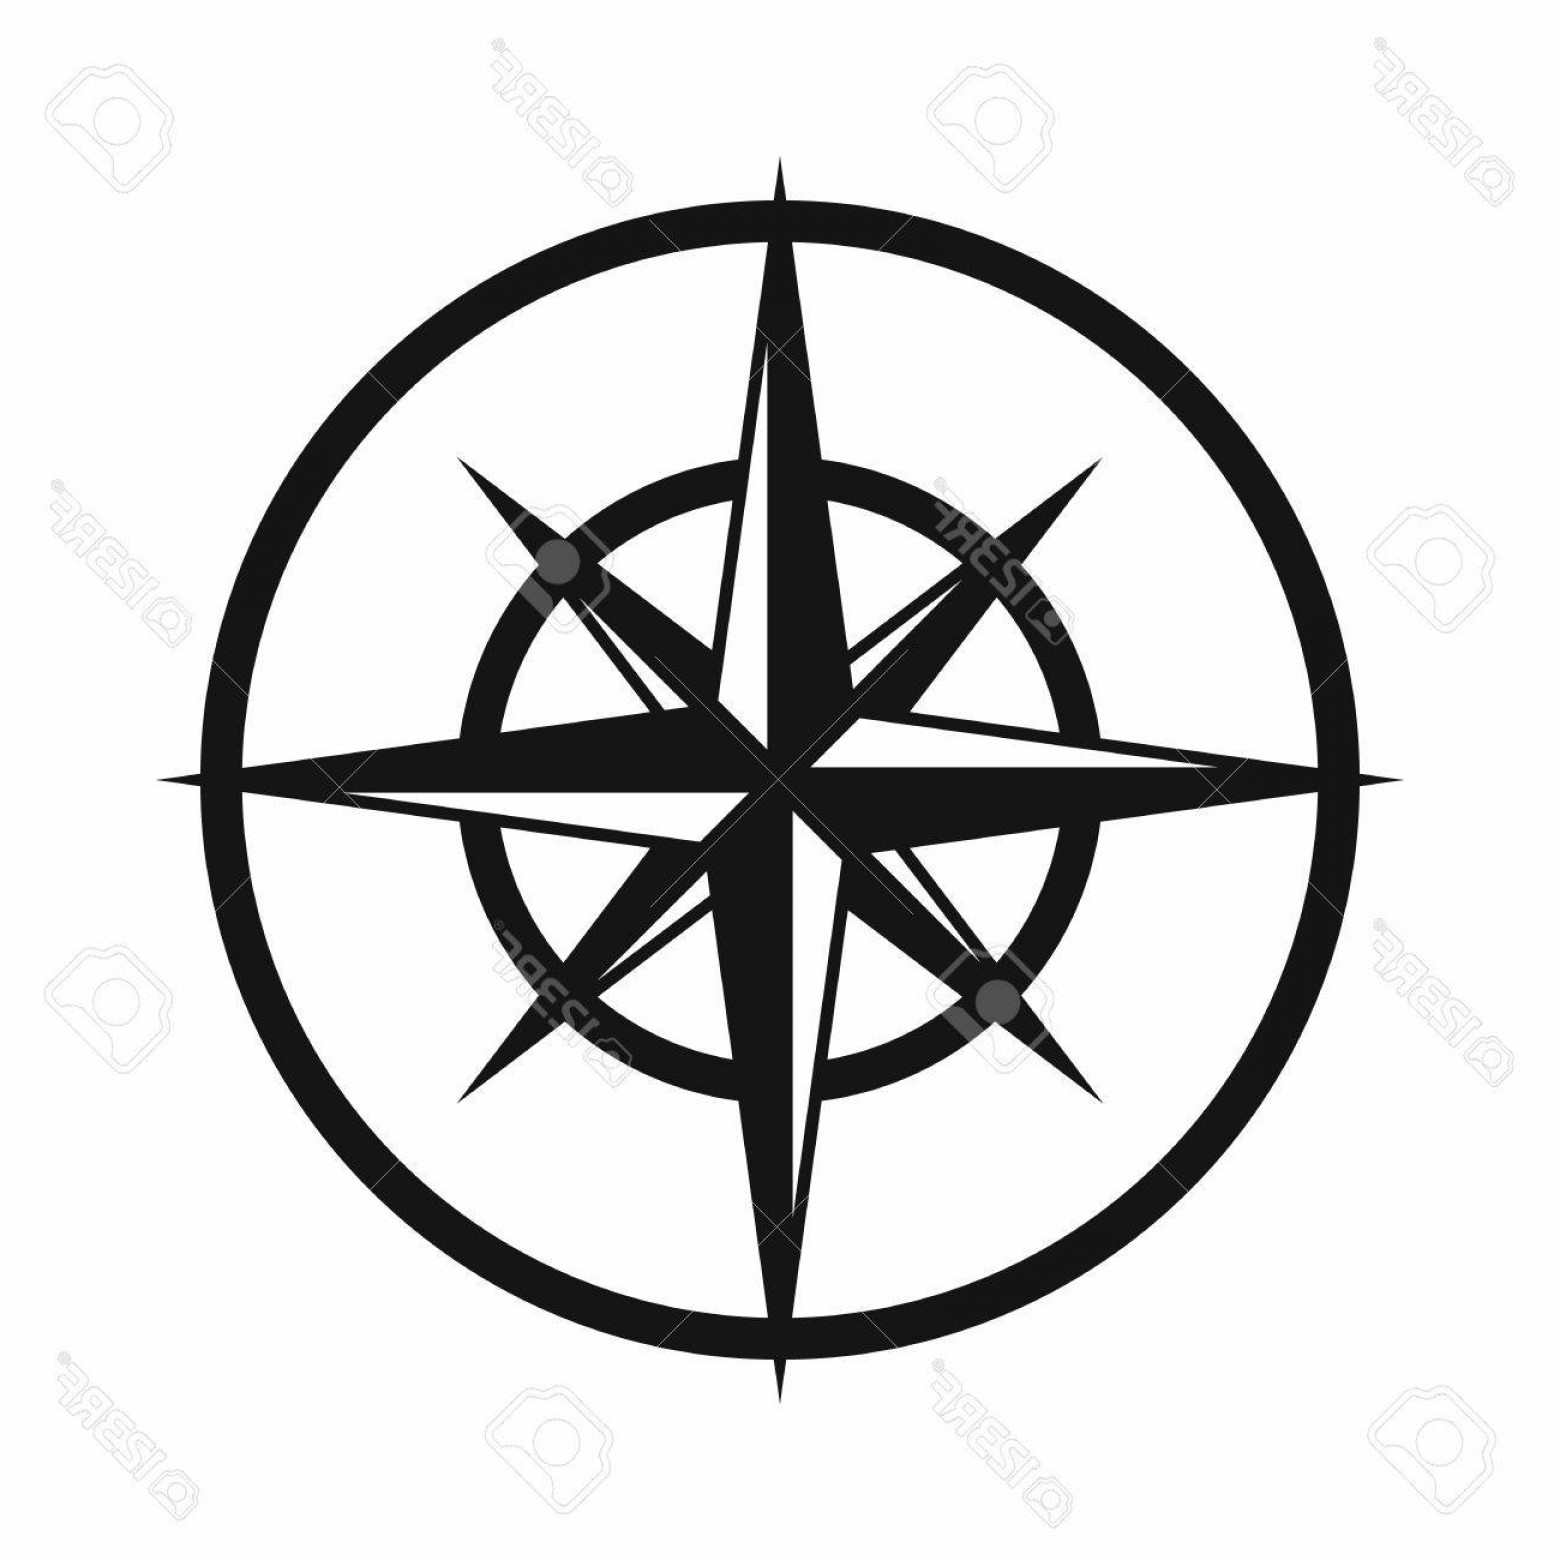 Photostock Vector Sign Of Compass To Determine Cardinal